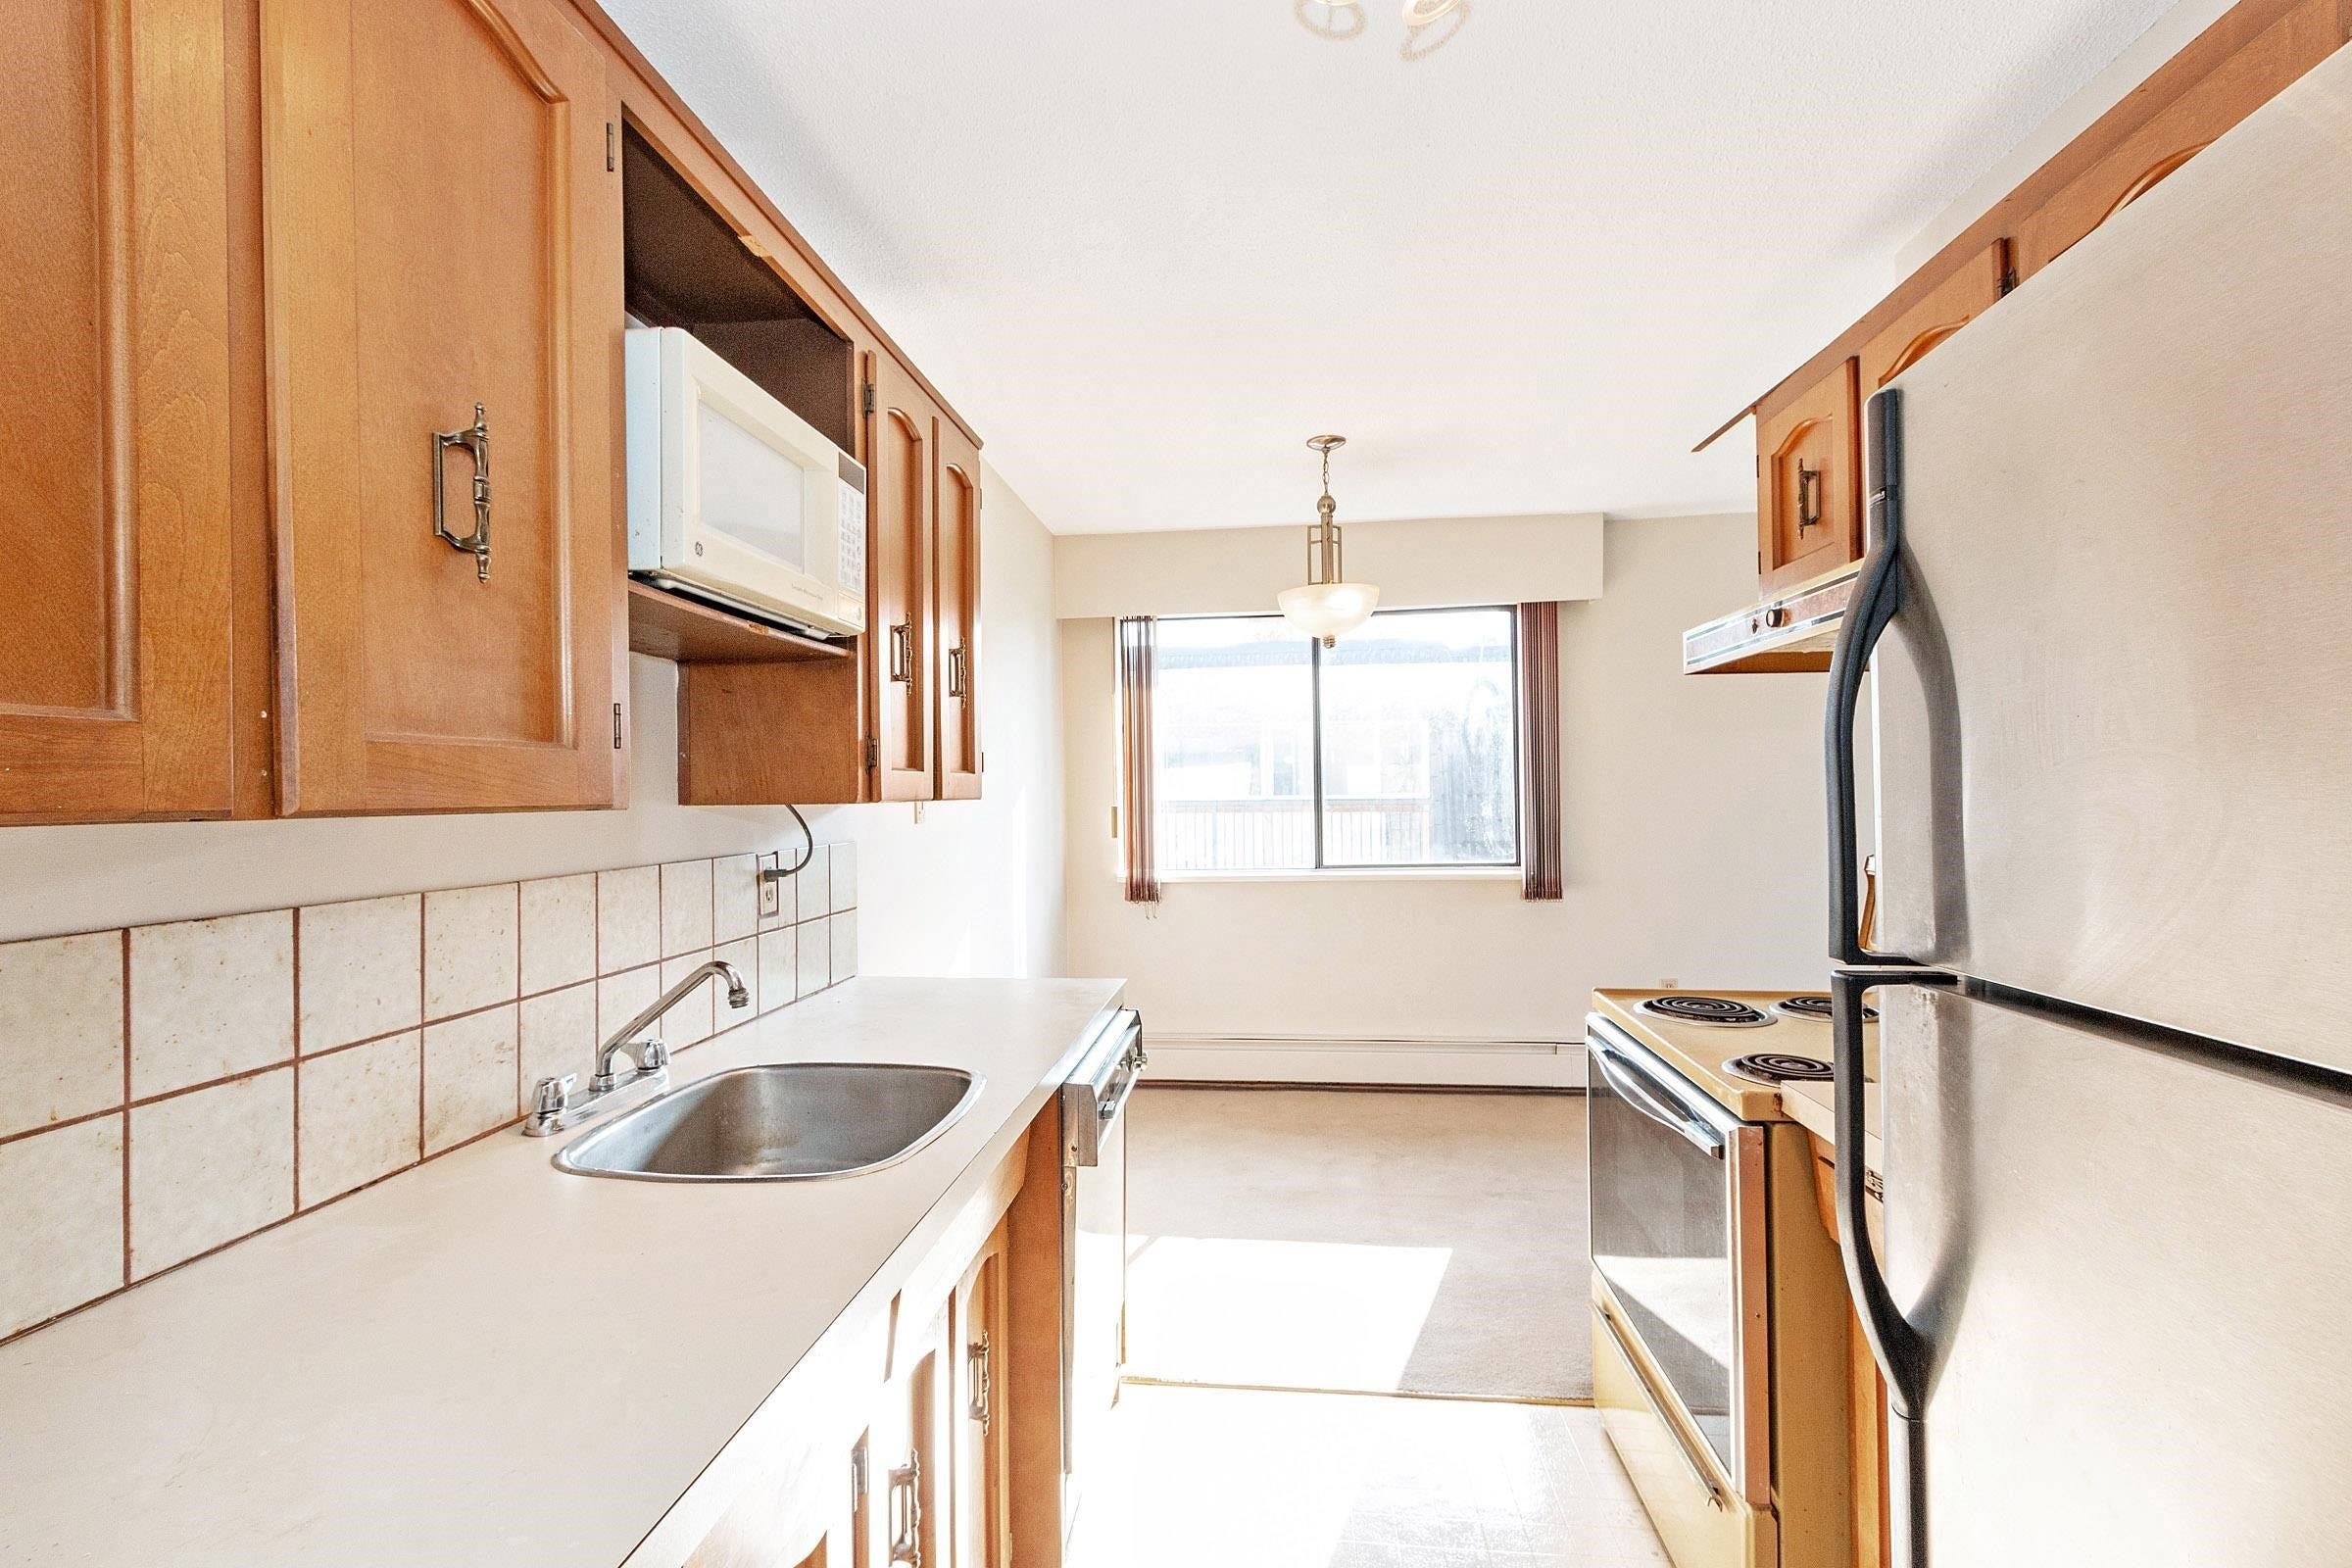 301 264 W 2ND STREET - Lower Lonsdale Apartment/Condo for sale, 2 Bedrooms (R2625527) - #8